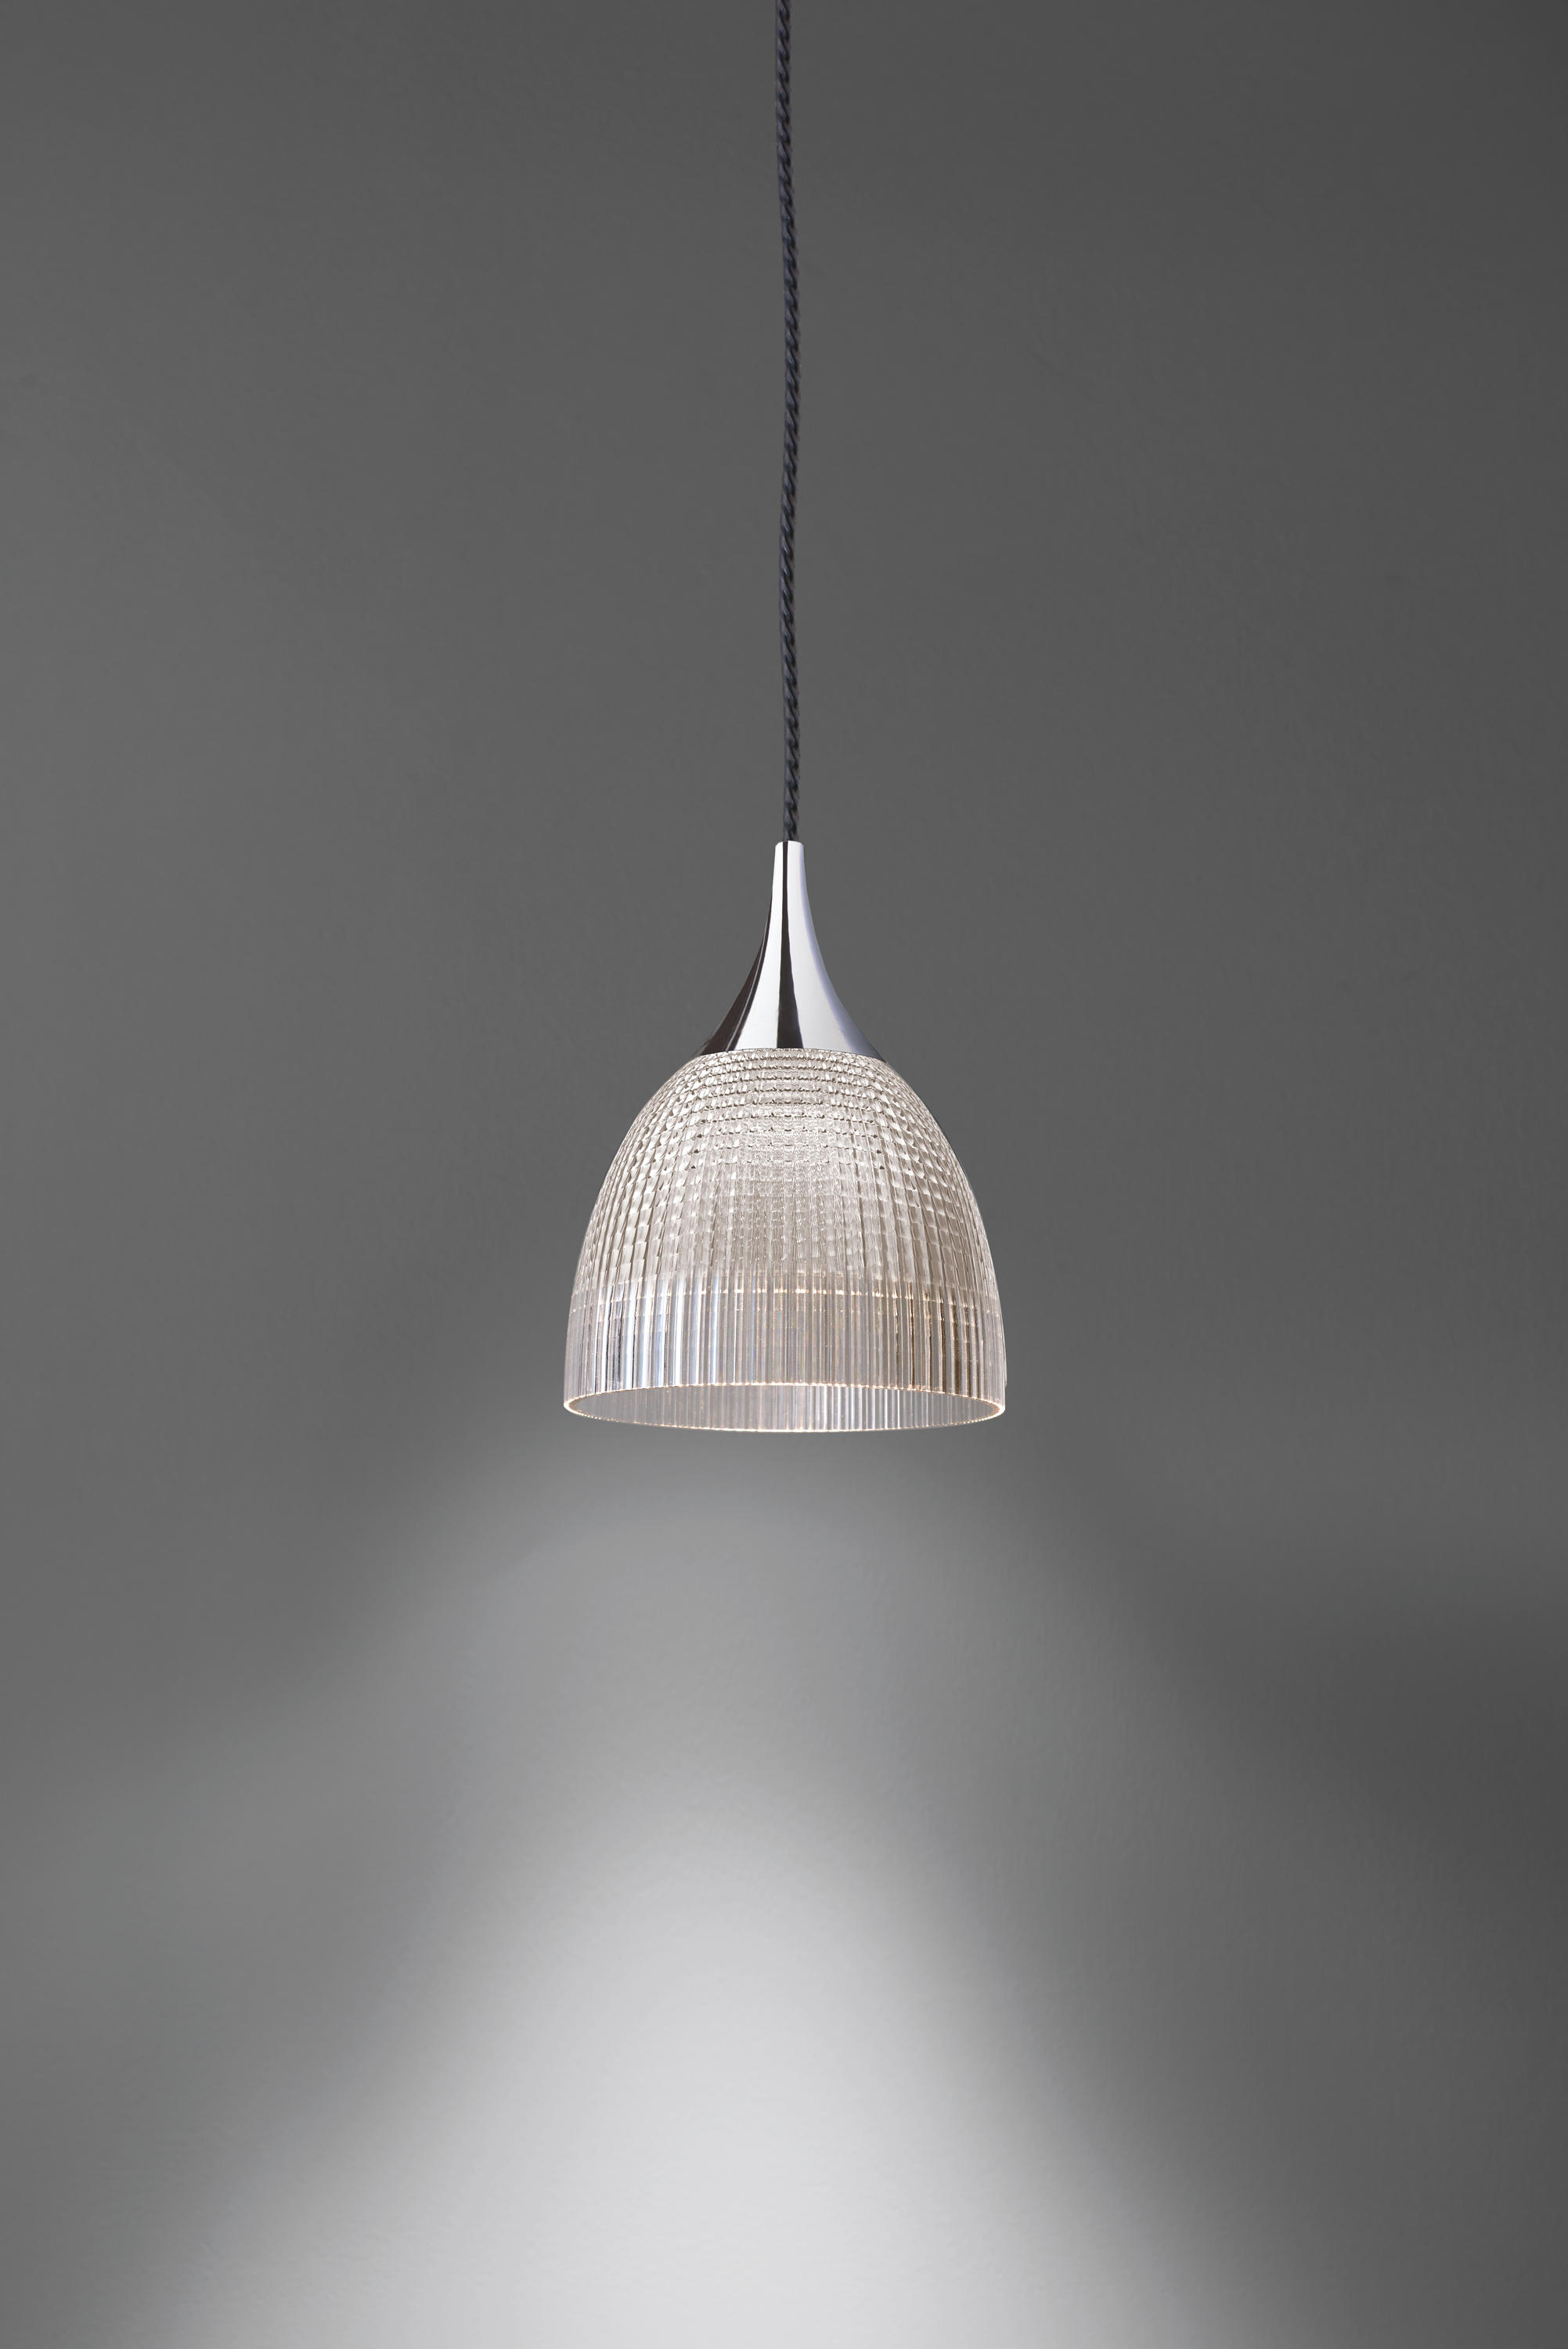 Lana pendant lamp general lighting from artemide architonic lana pendant lamp by artemide general lighting aloadofball Image collections